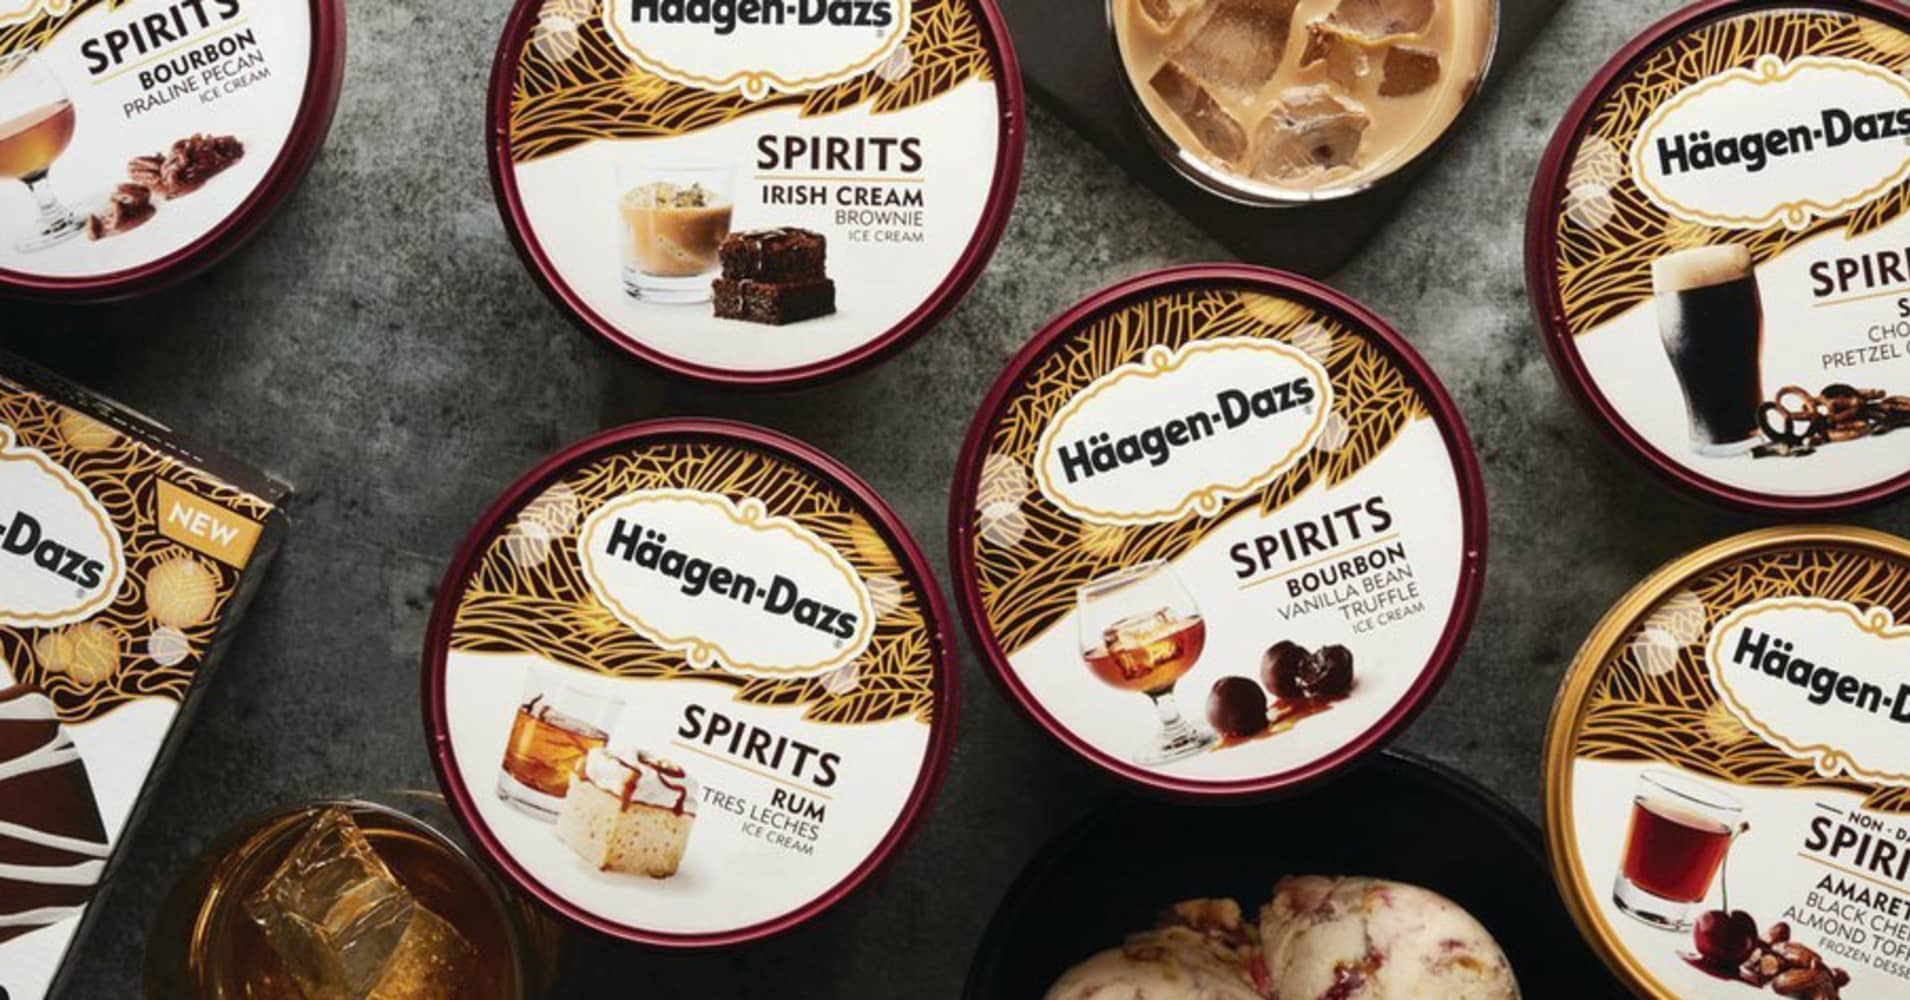 Haagen-Dazs announces new boozy ice cream line